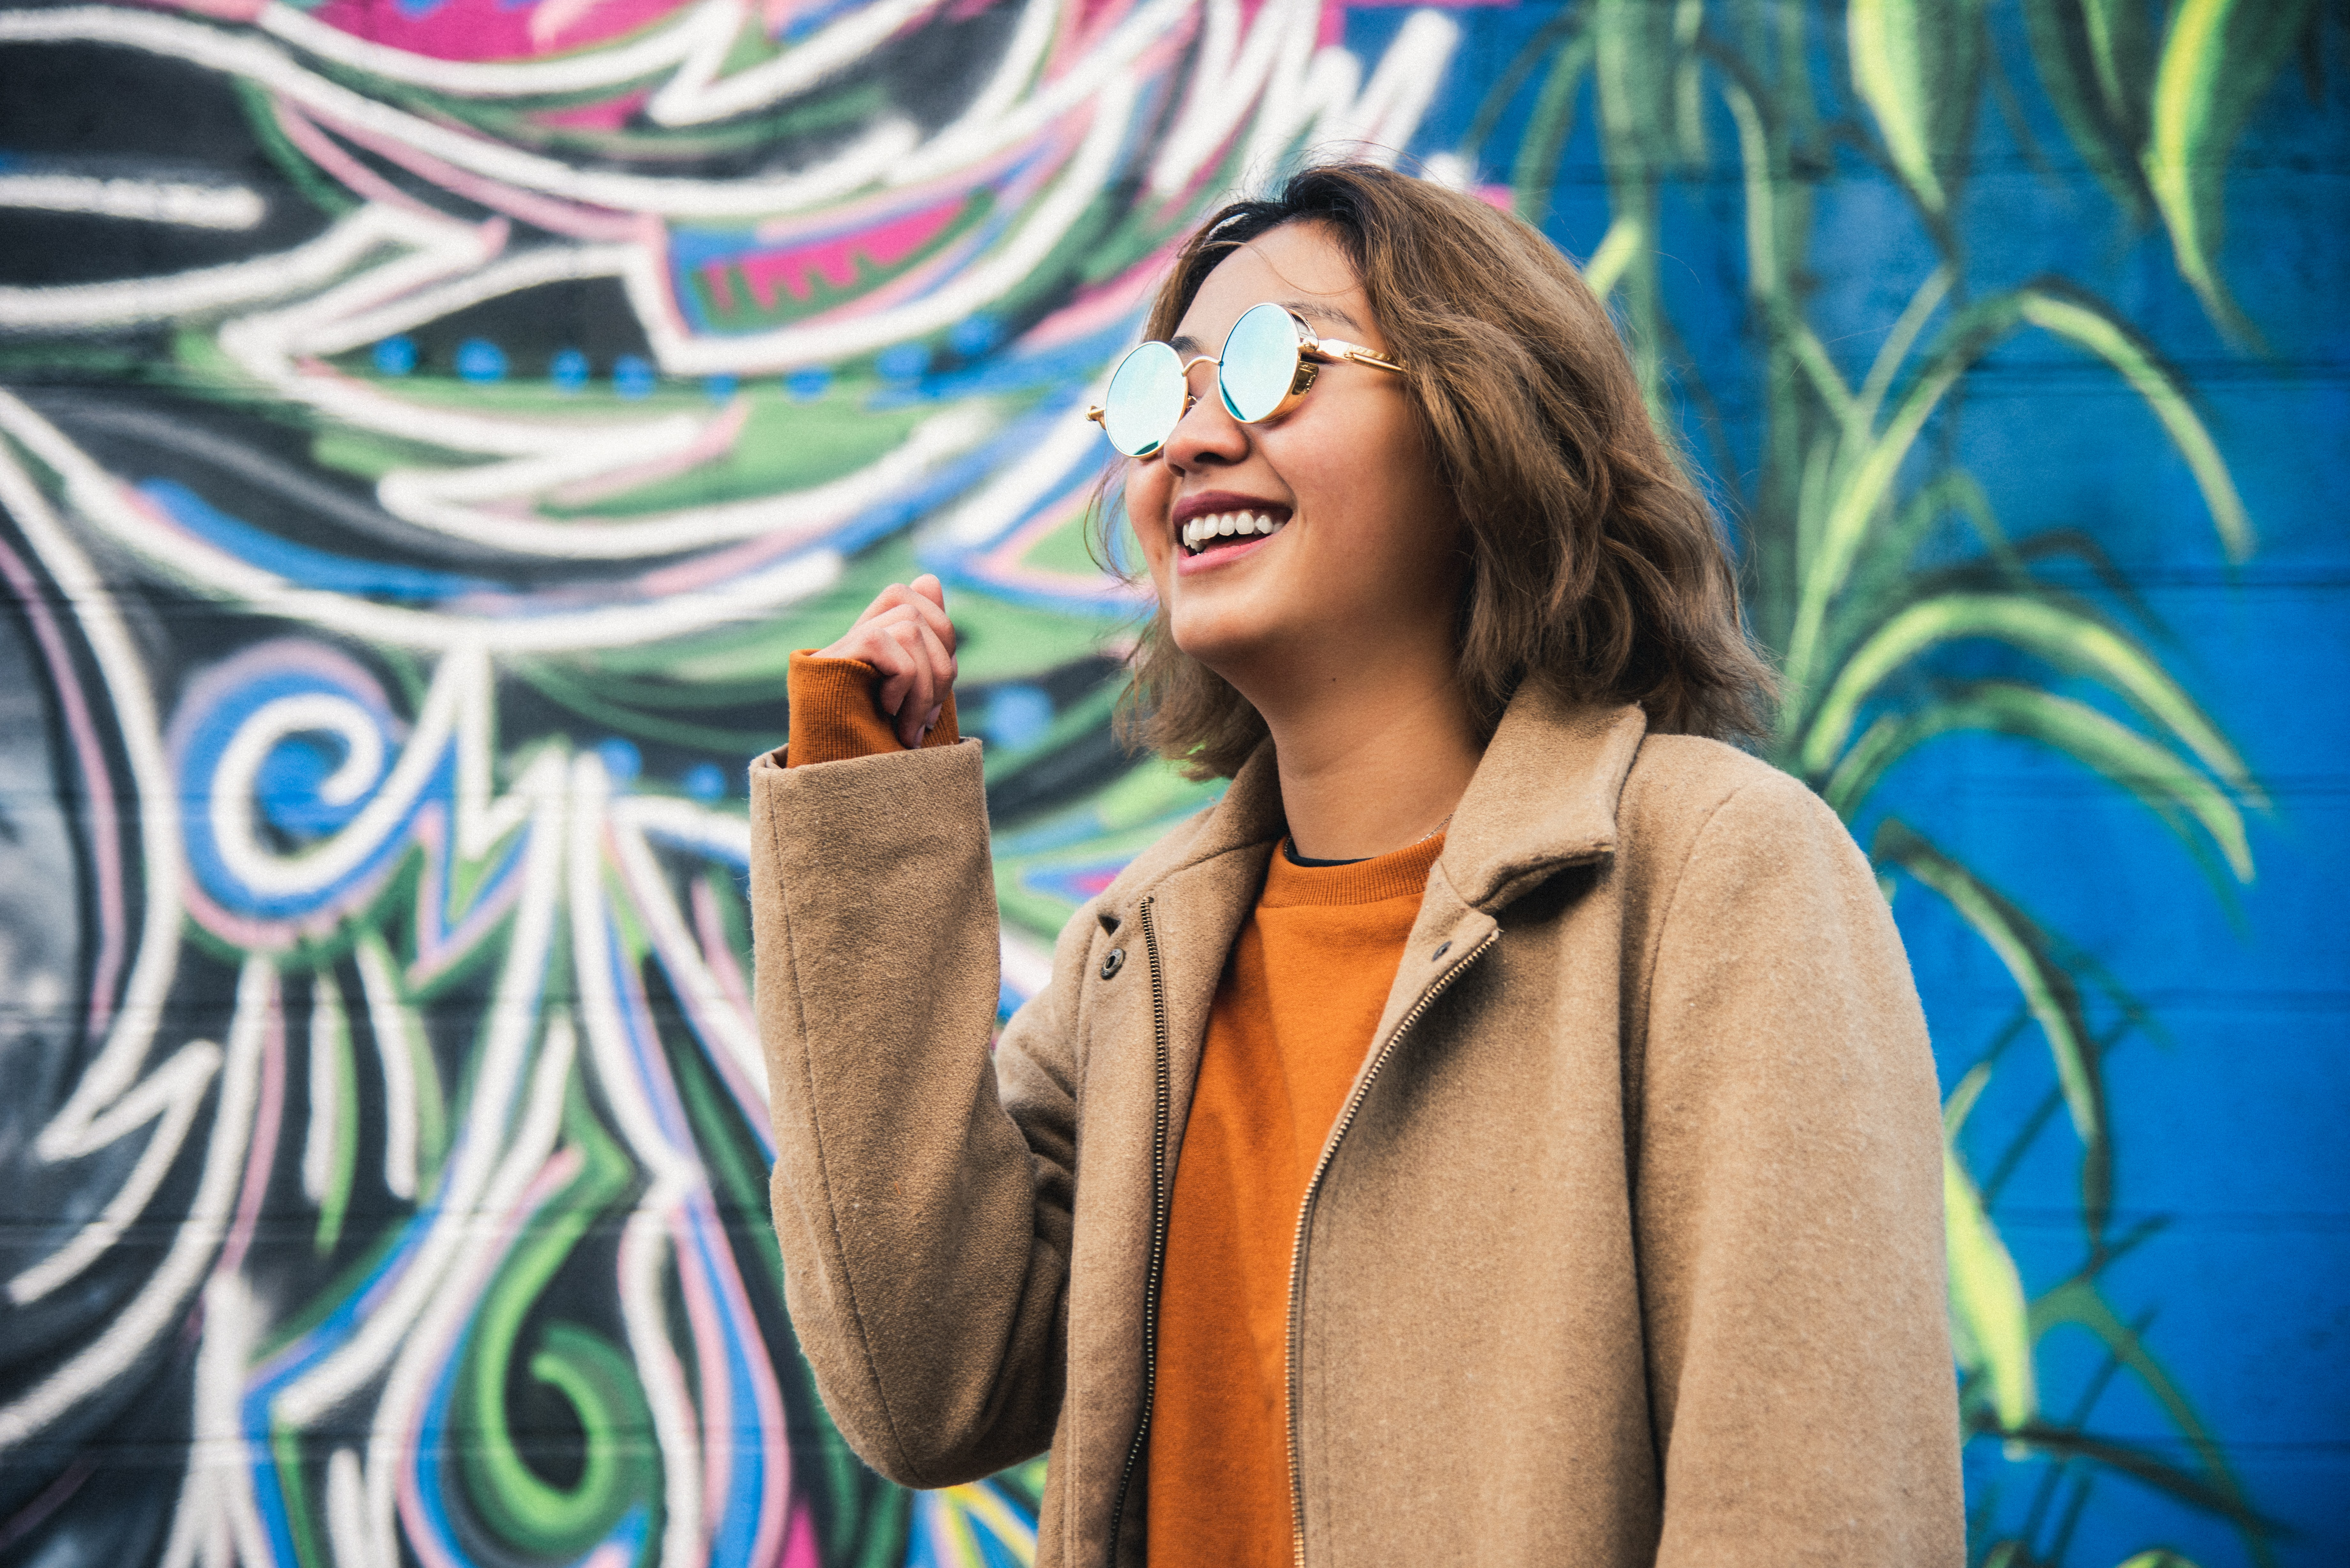 A young woman with reflective glasses stands in front of a graffiti wall. She is smiling and wers an orange shirt and tan coat.